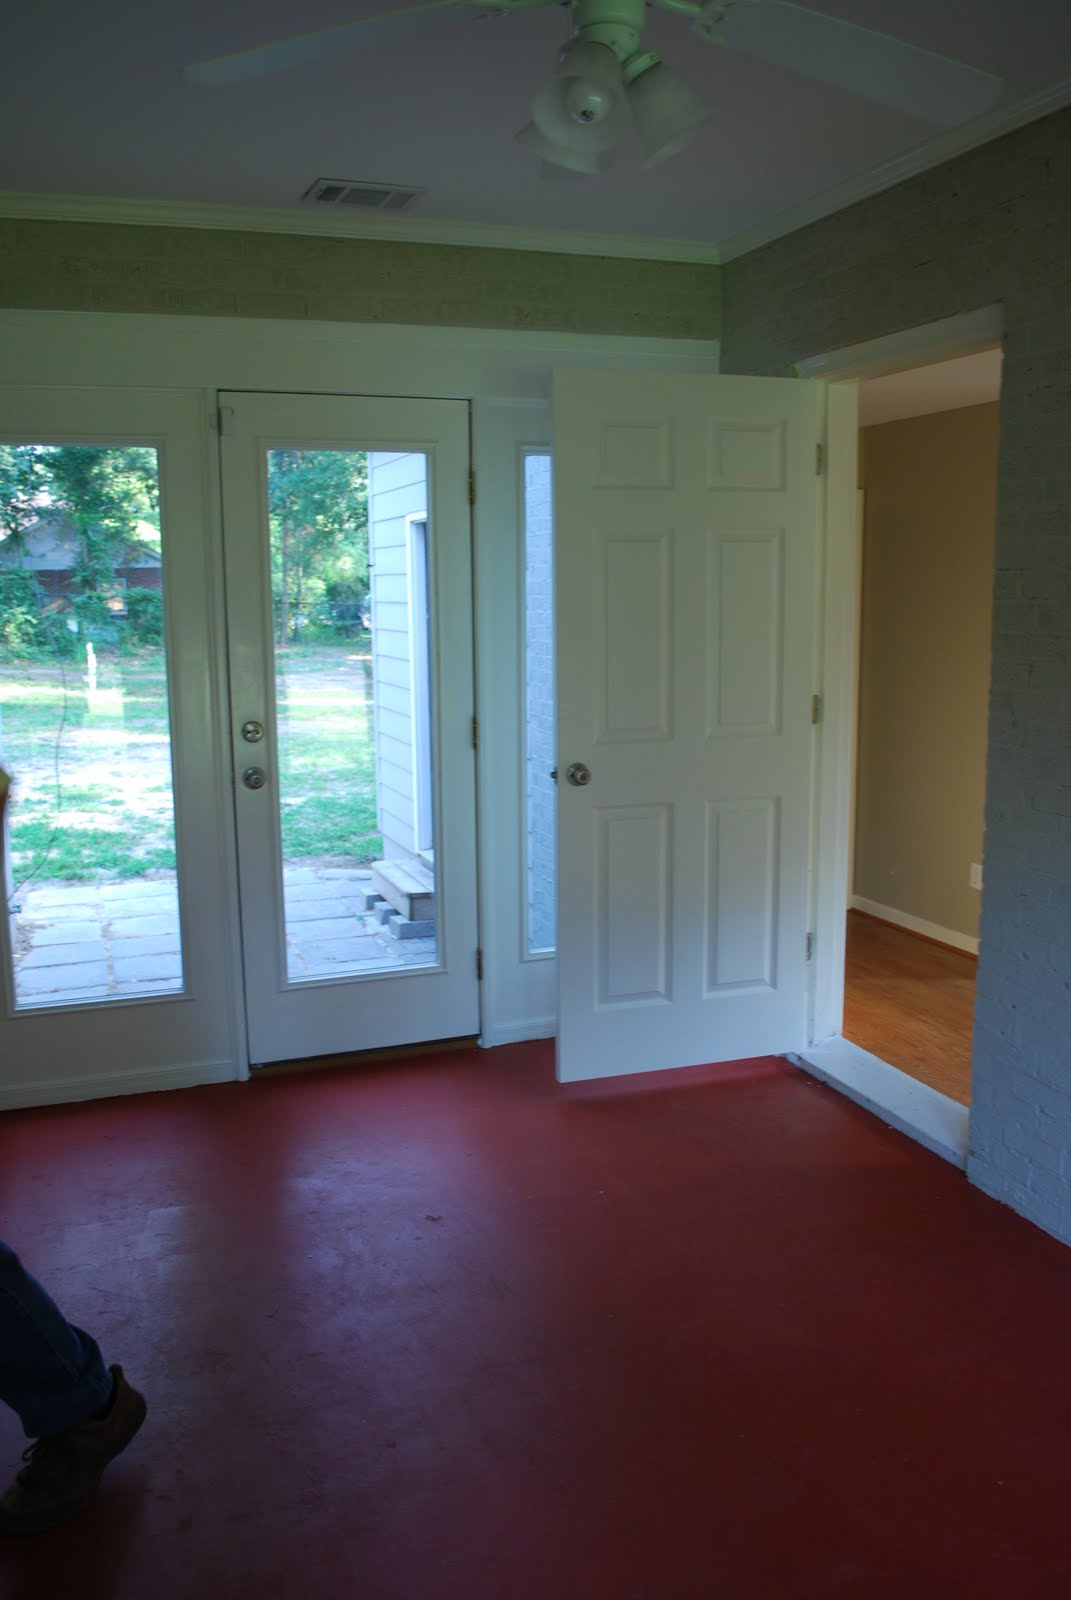 Interior with Floor Painting Idea  the Nuance of